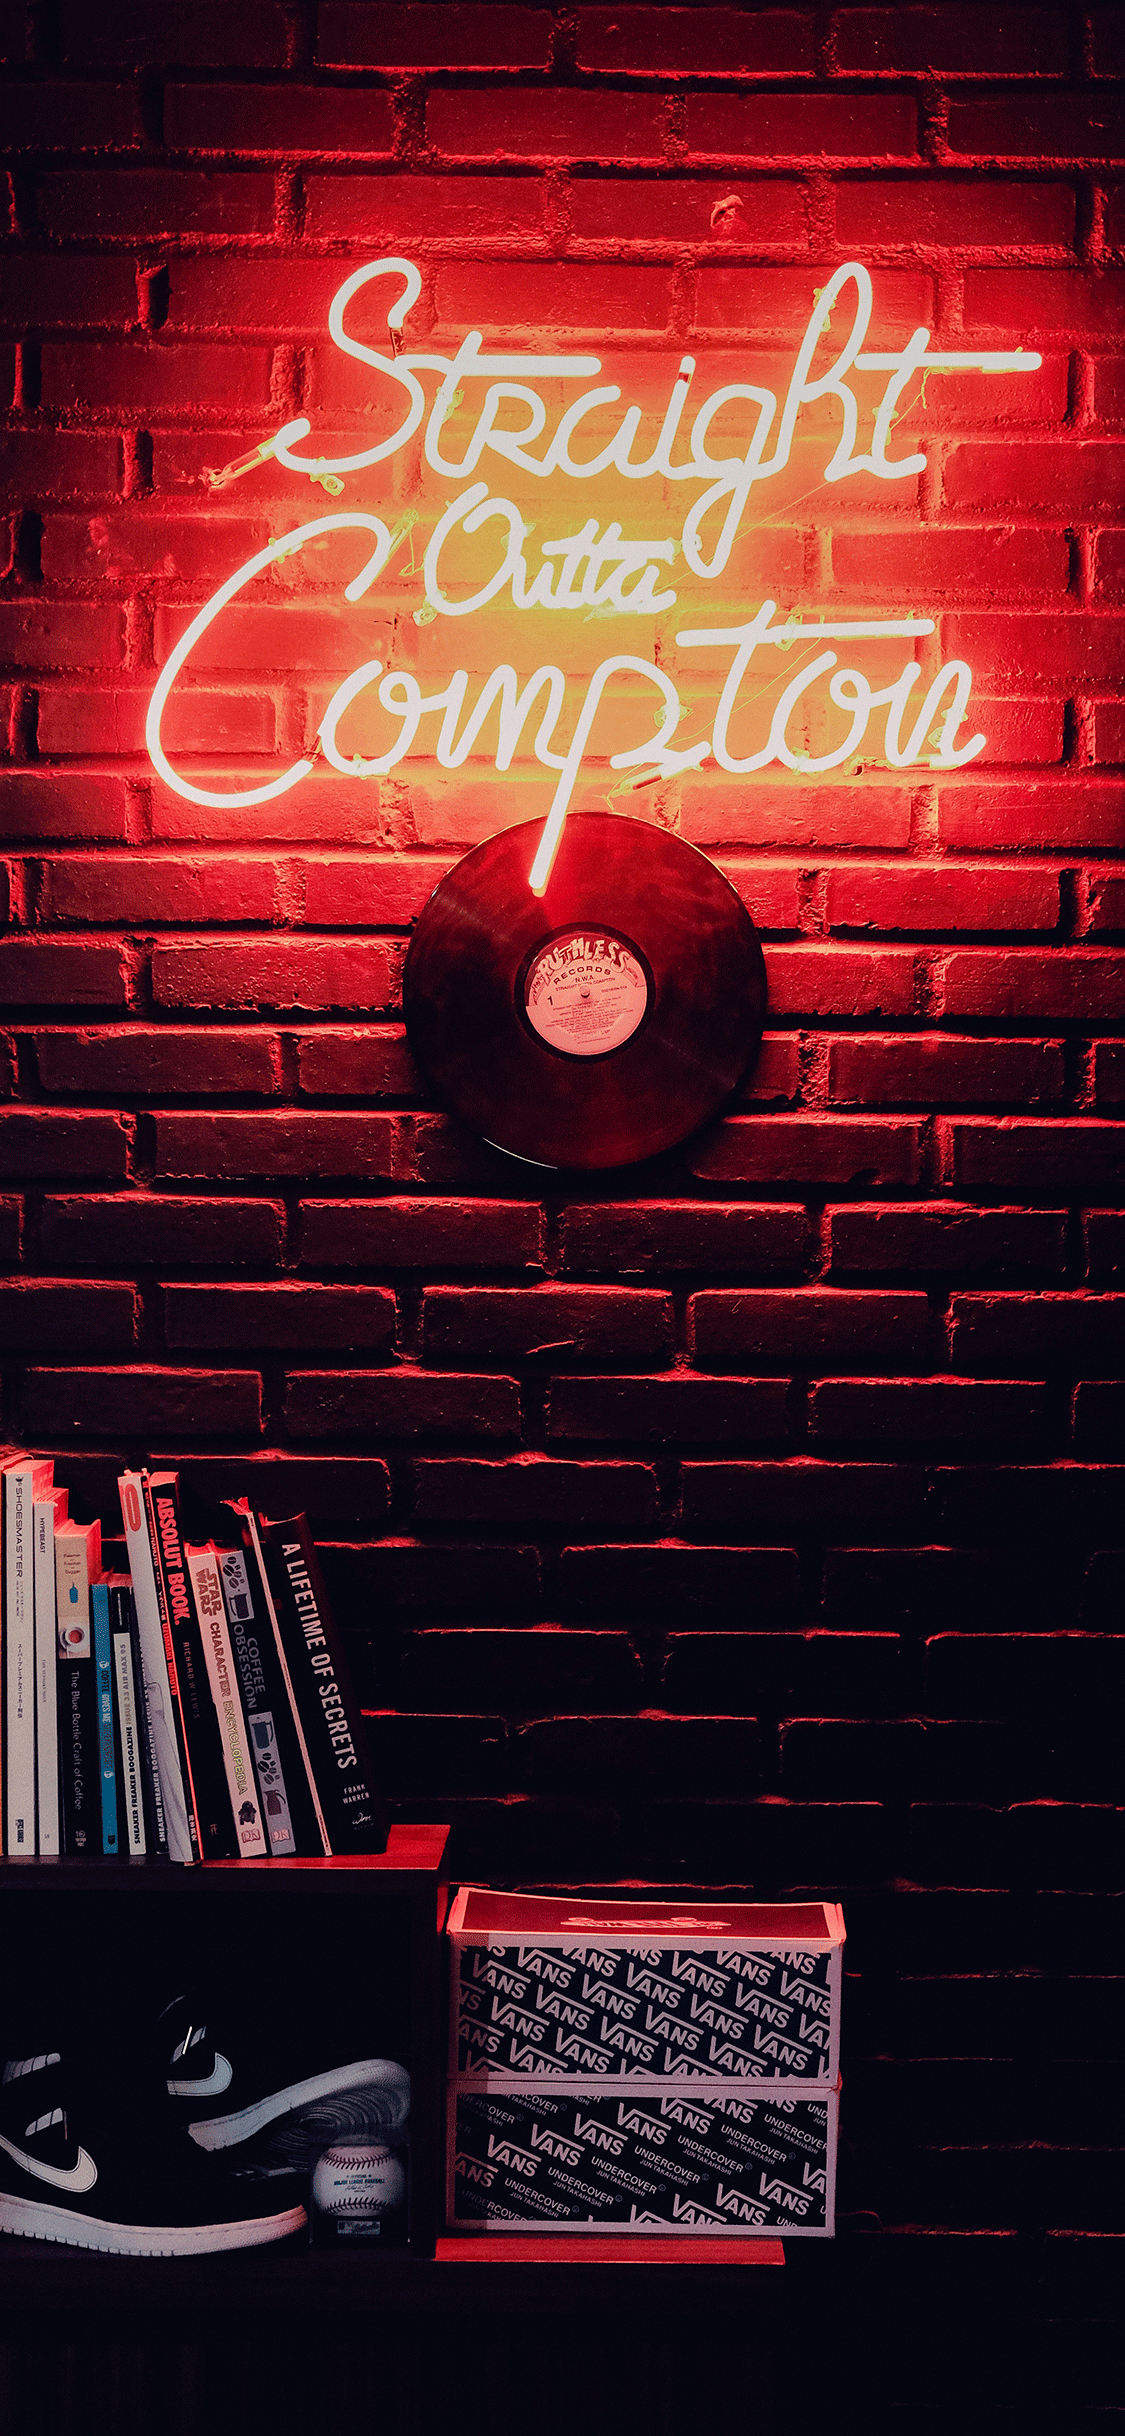 iPhone wallpaper neon sign compton Fonds d'écran iPhone du 19/10/2018